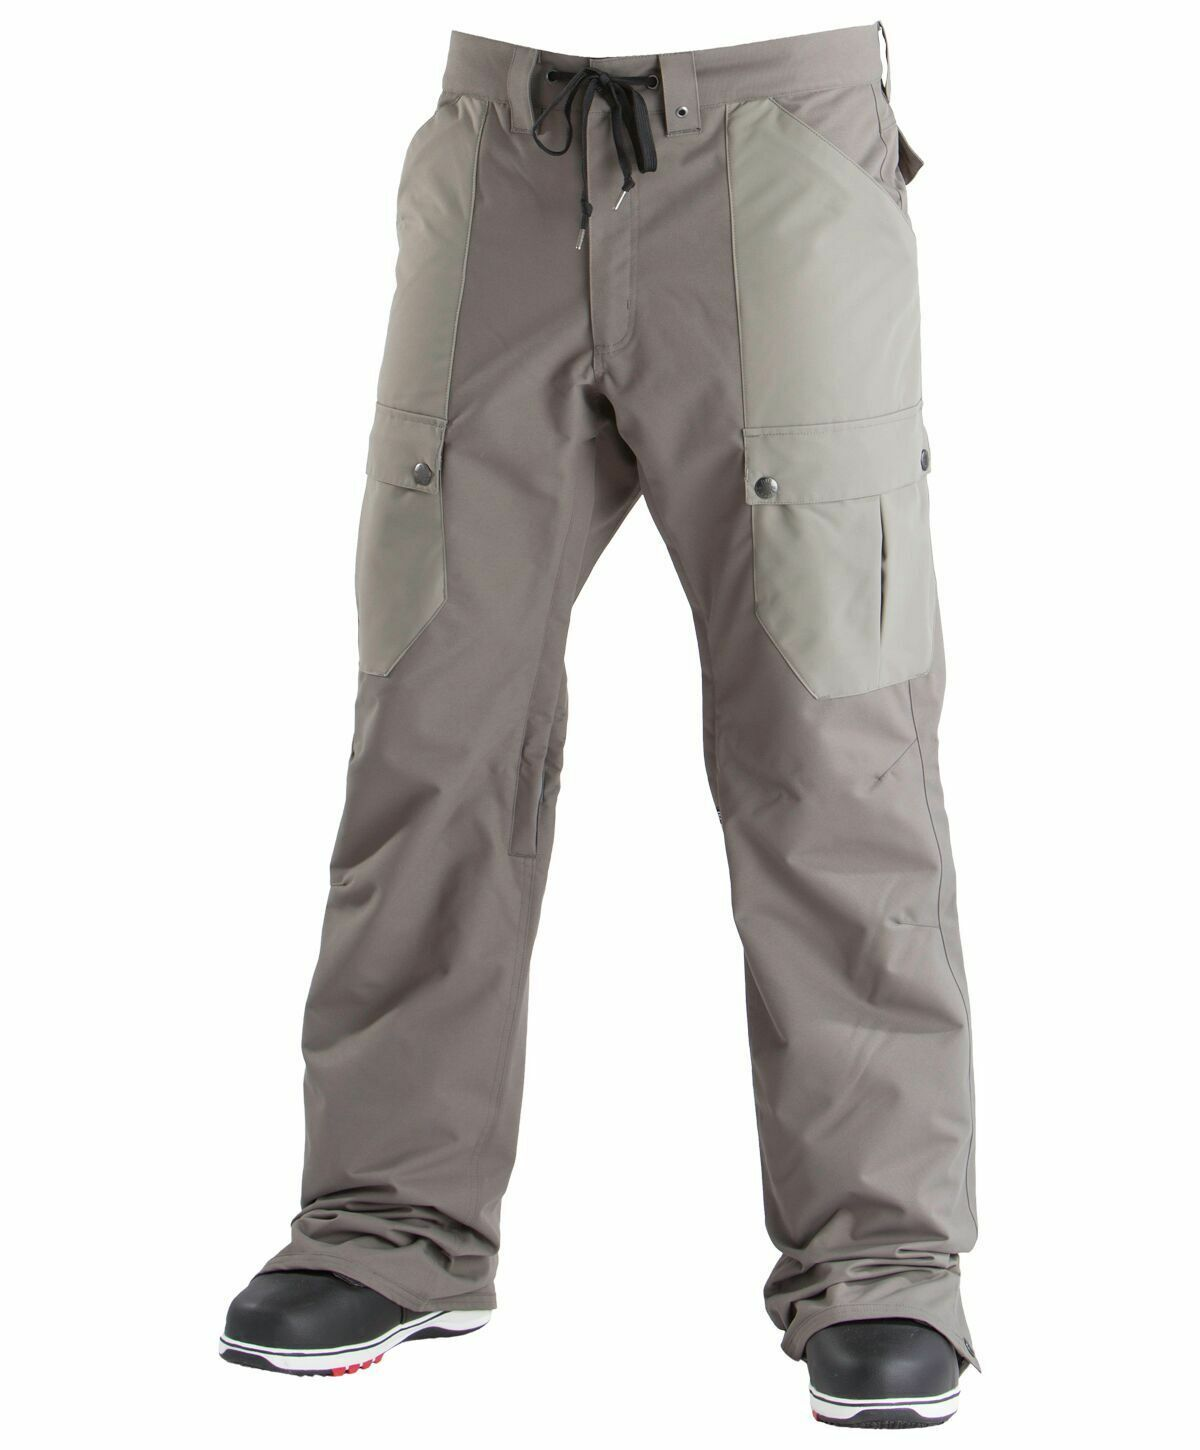 2019  NWT Airblaster Mens Freedom Cargo Pant Pants L Large 10K Snowboard pr230  presenting all the latest high street fashion